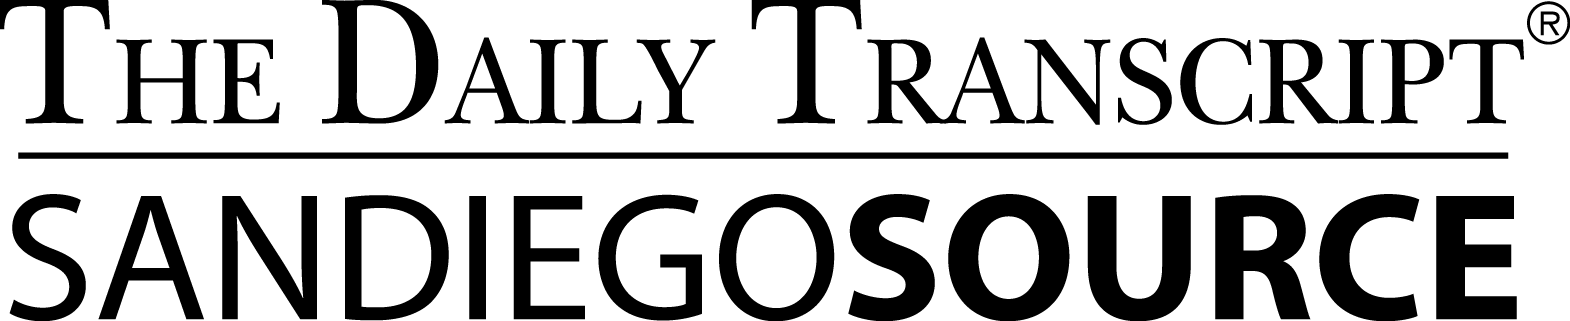 CEO Del Heles – Top Influential Nominee by The Daily Transcript